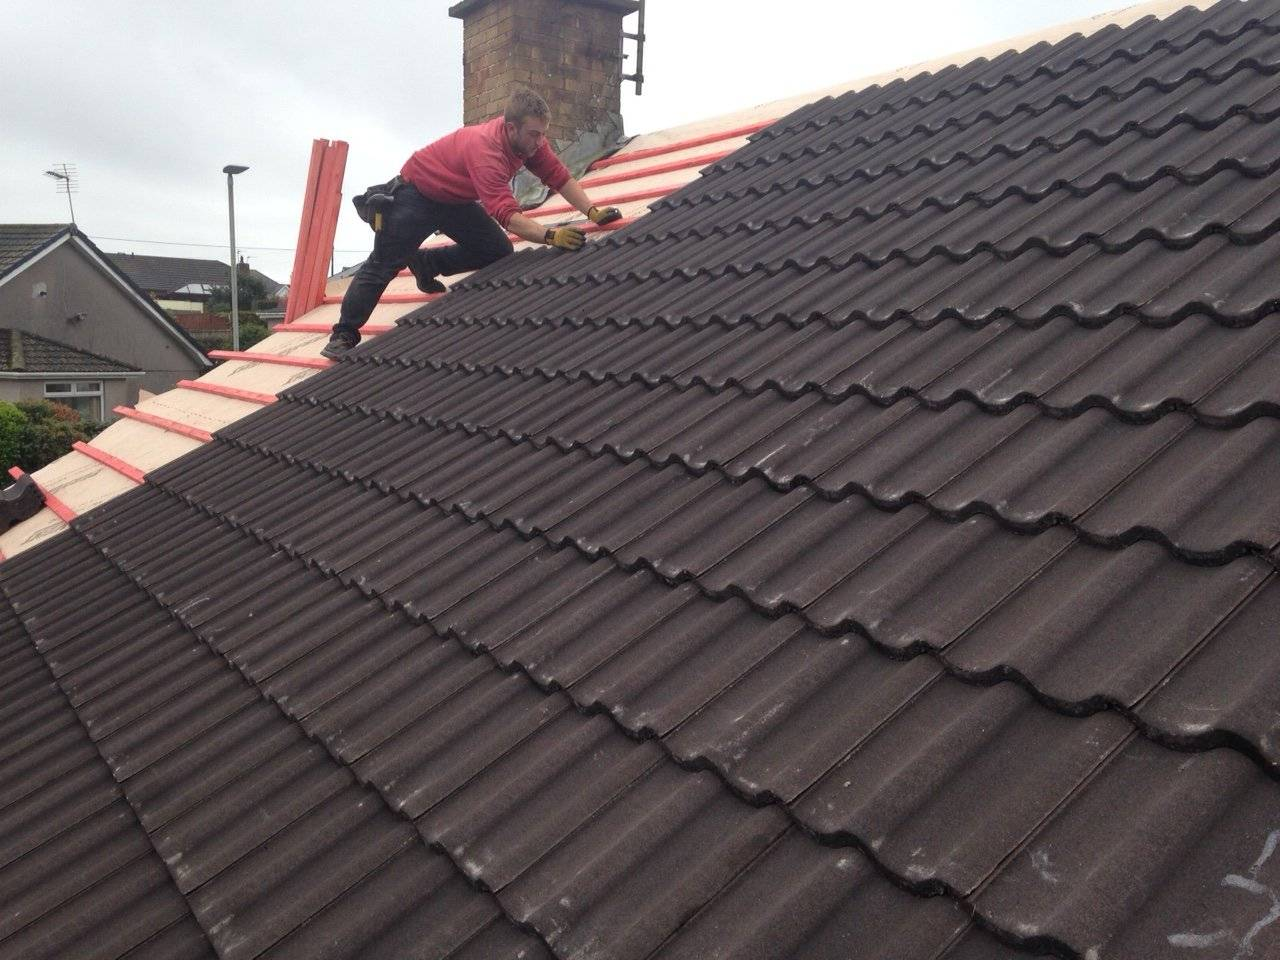 new tiled pitched roof being finished by roofer